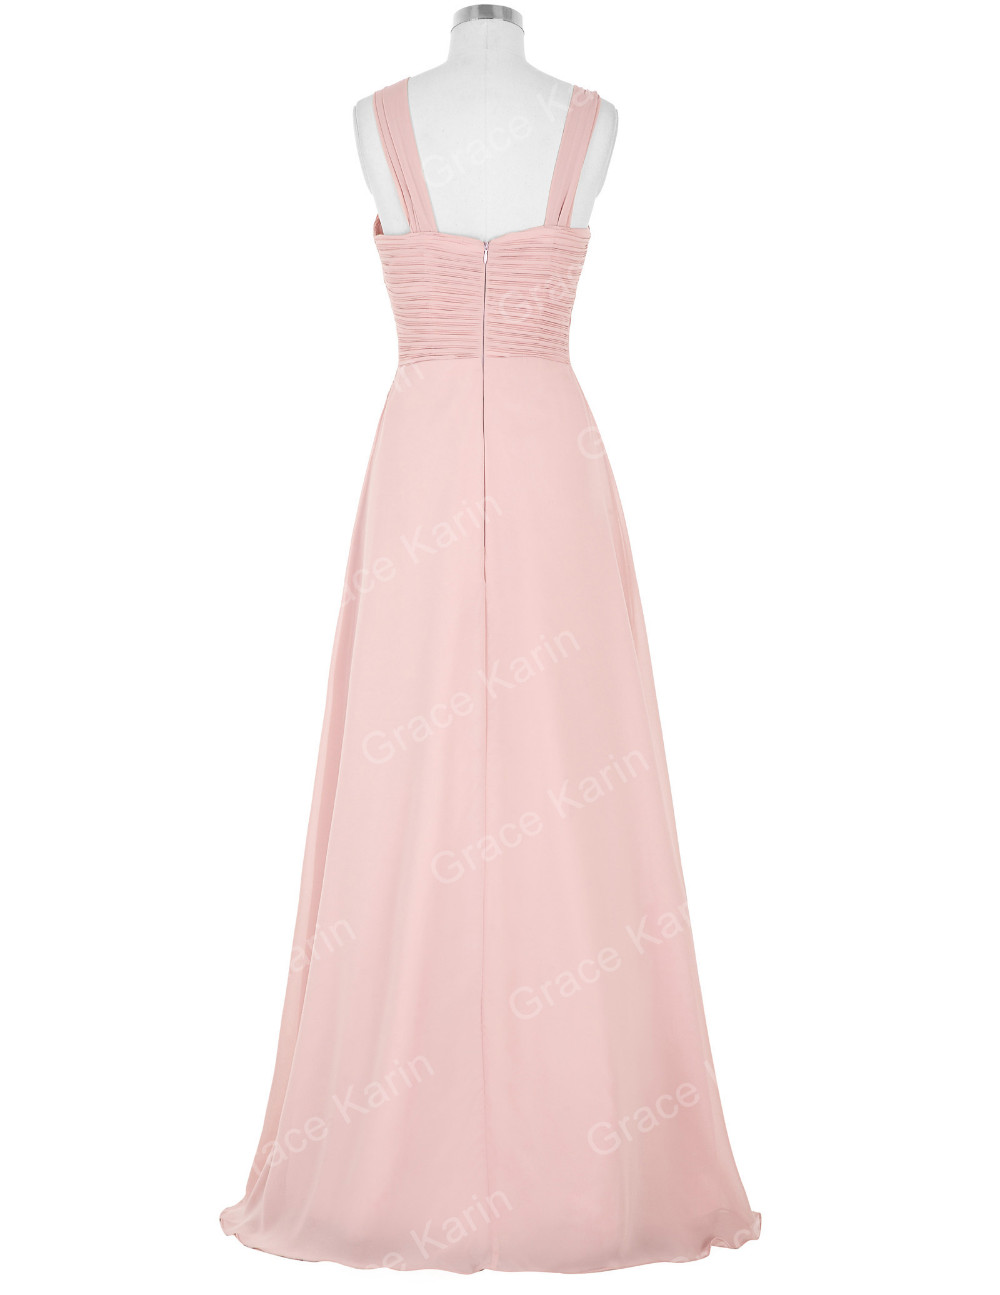 Grace Karin 2016 Sleeveless Full-Length Light Pink Long Chiffon weddings bridesmaid dresses GK000074-1